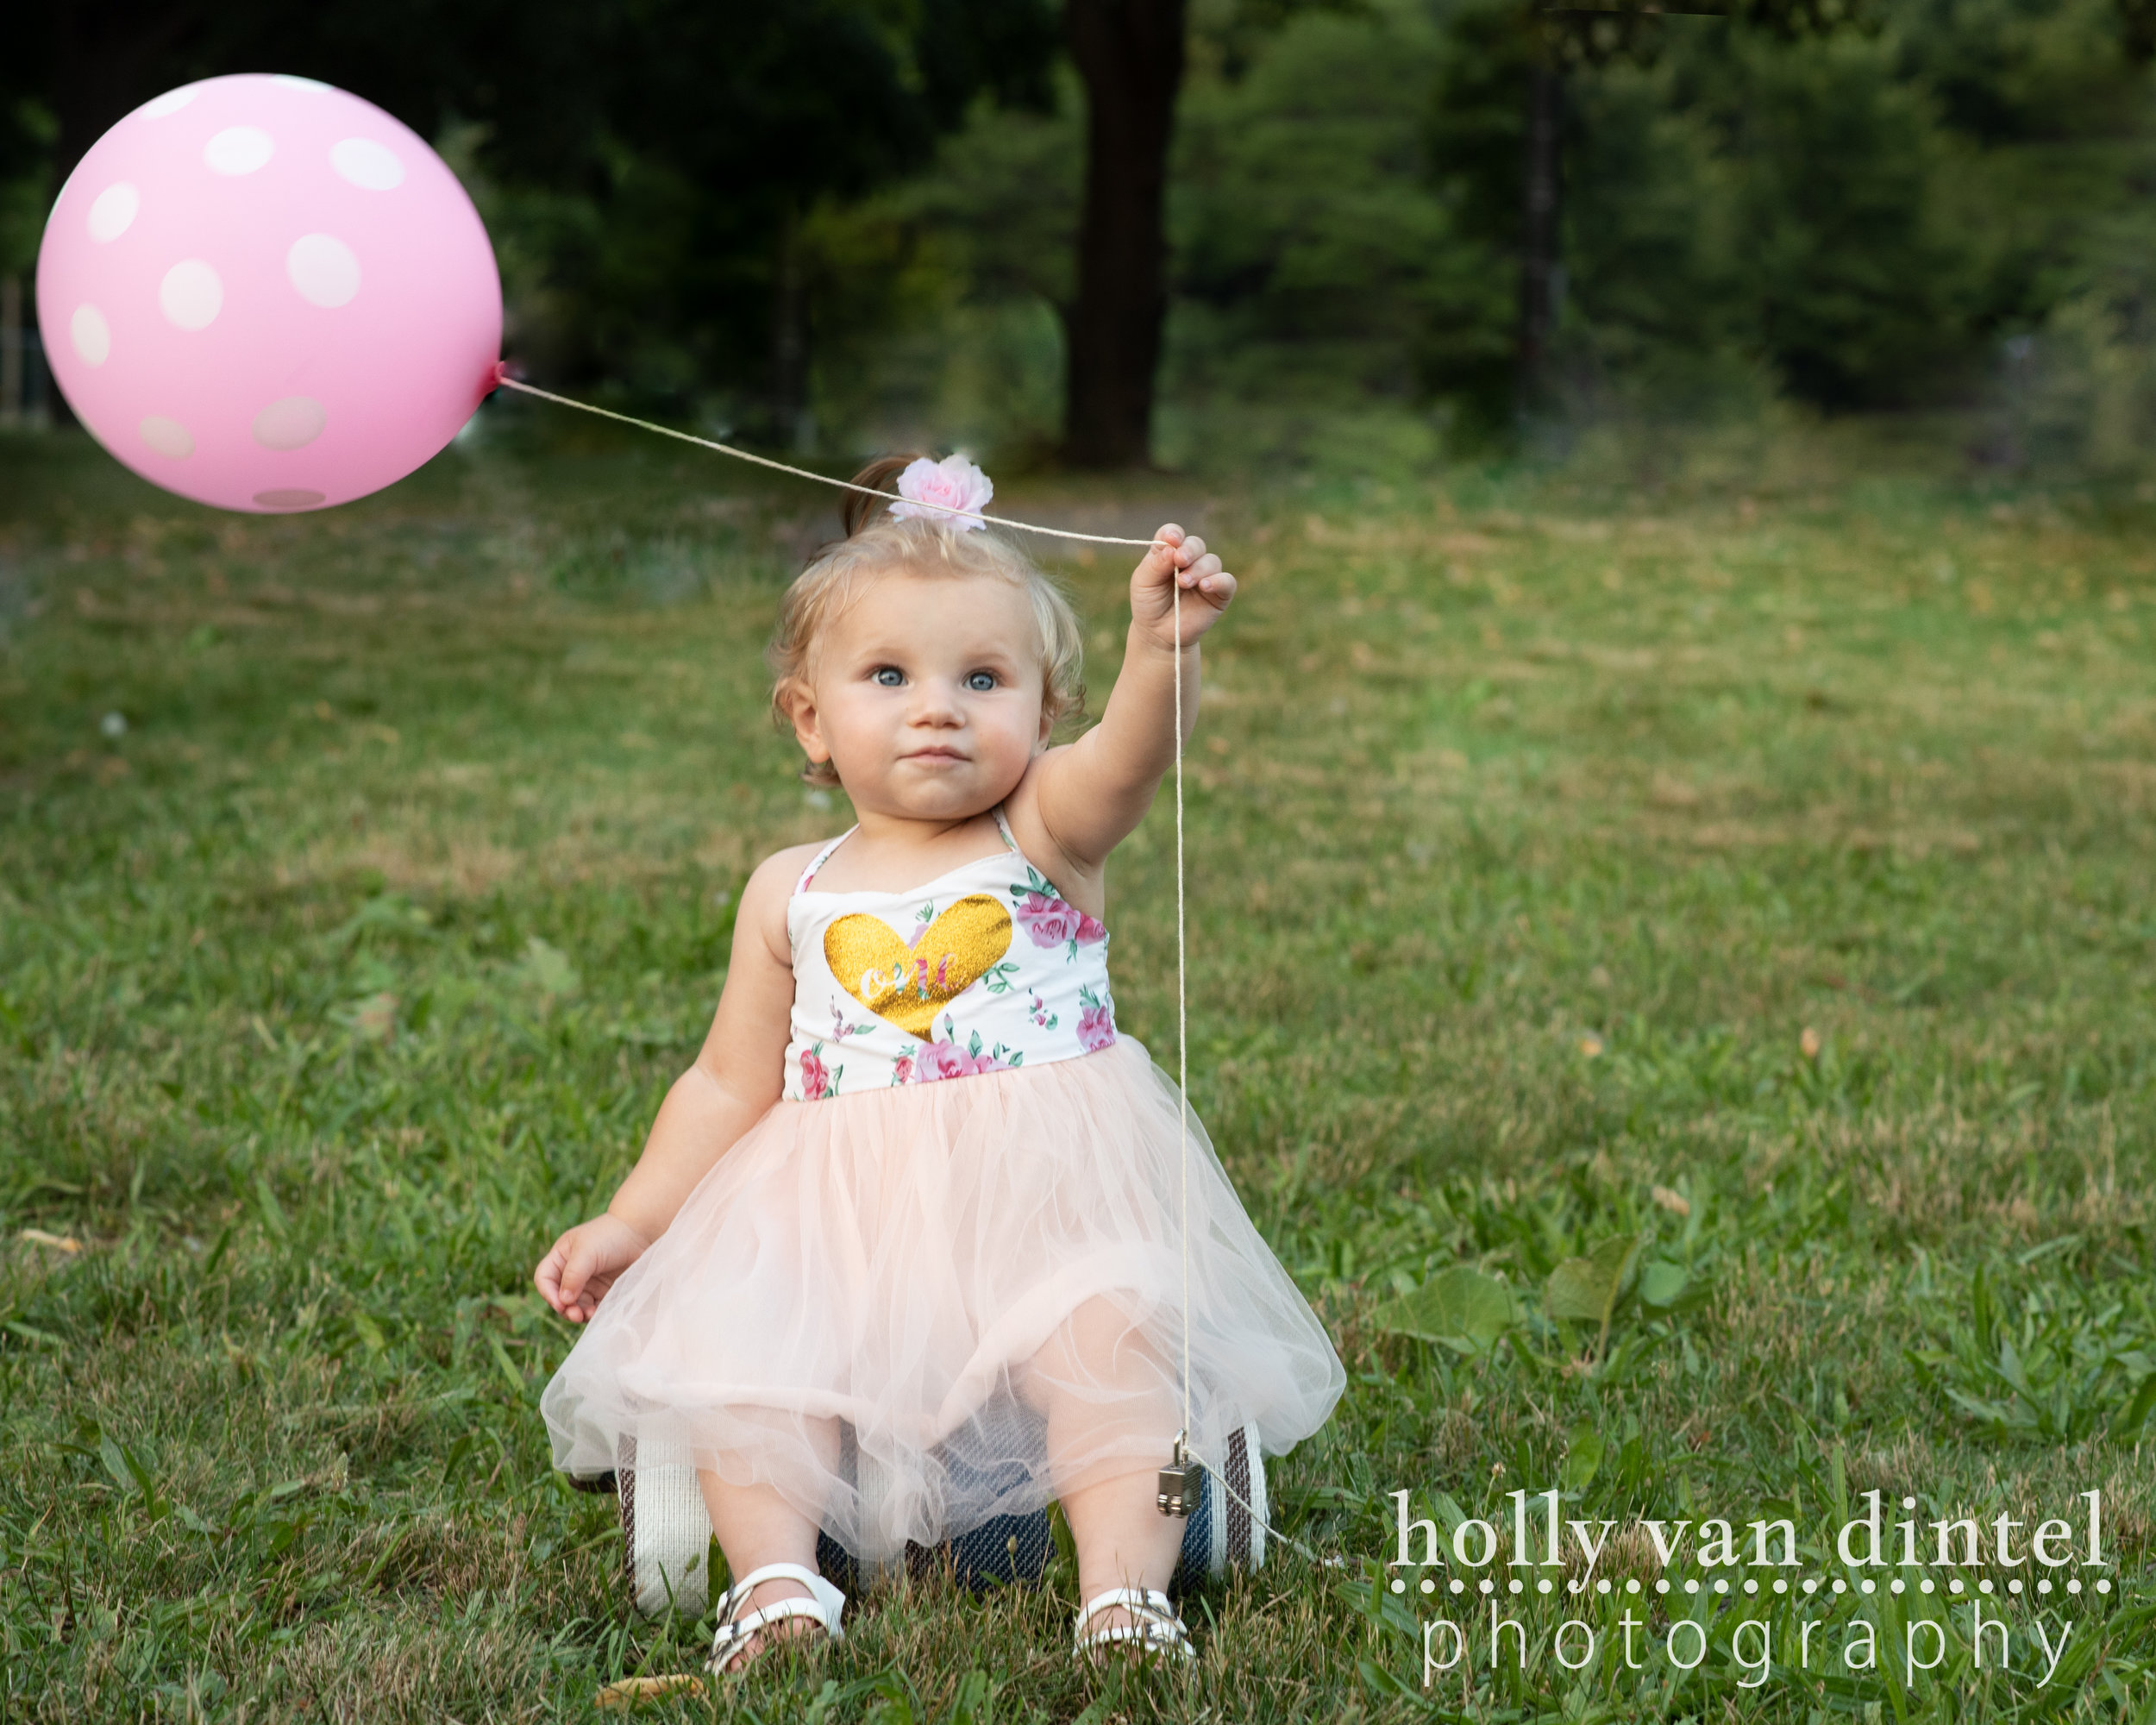 Little girl first birthday with balloon sitting in grass.